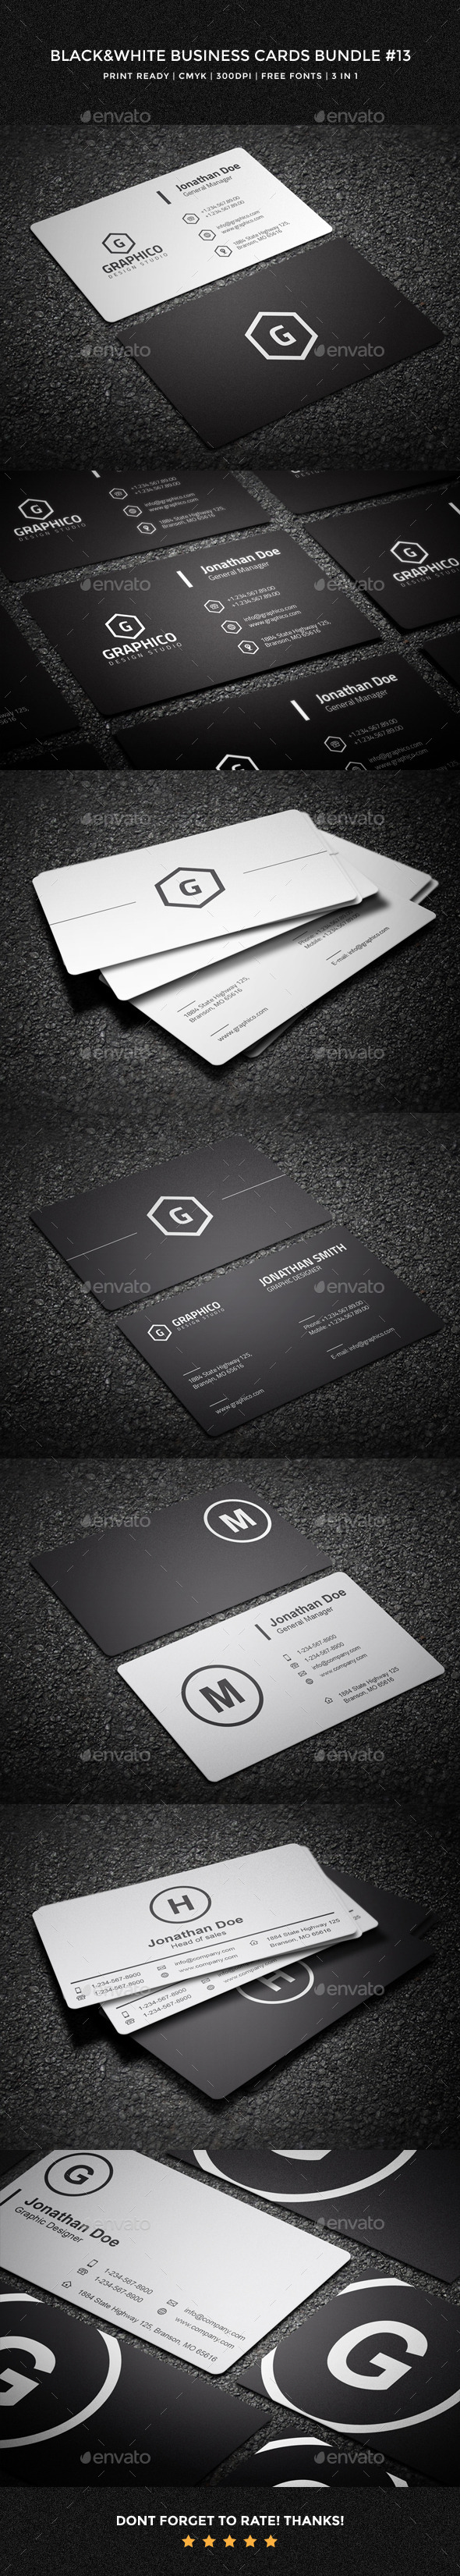 Black & White Business Cards Bundle - 13 - Corporate Business Cards